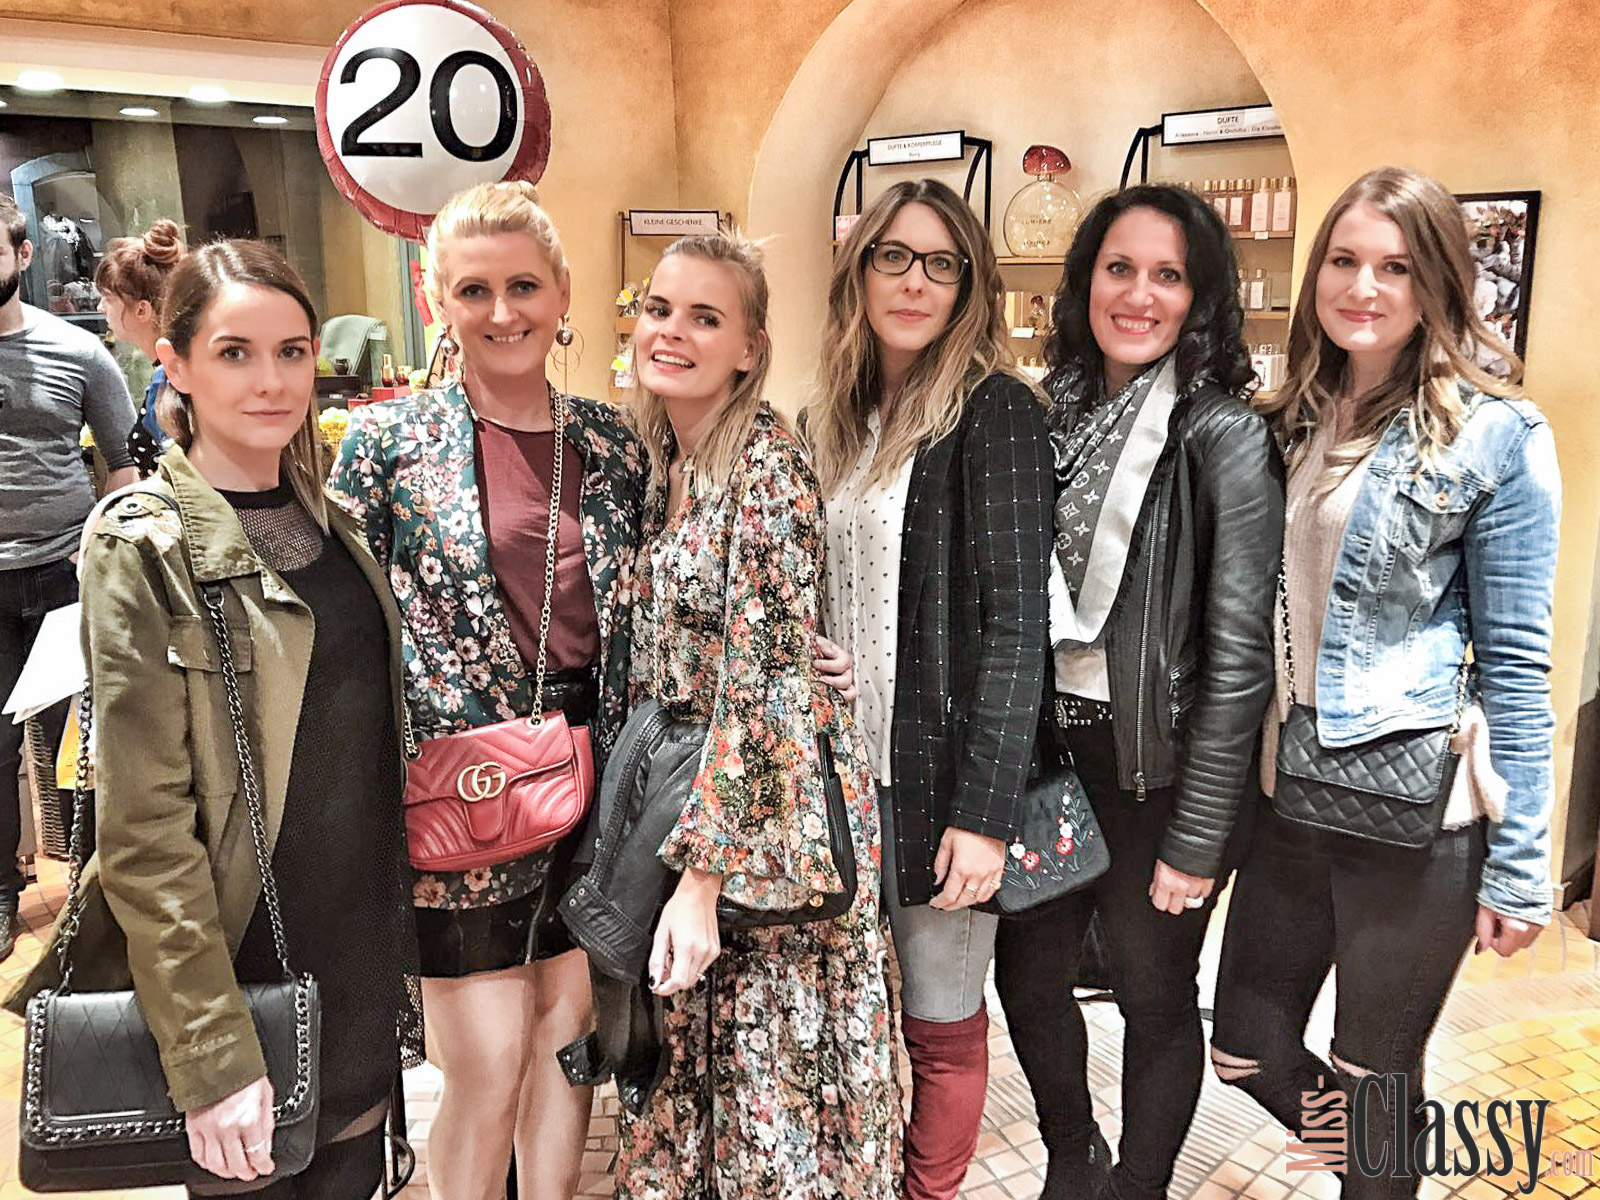 LIFESTYLE: L'Occitane en Provence feiert den 20. Geburtstag in Graz, Miss Classy, Lifestyle Blog, Beauty Blog, Graz, Steiermark, Österreich, classy, beclassy, Provence, Kosmetik, Parfum, Gesichtspflege, Store, Shop, Lavendel, Bloggerevent, Neumodisch, Carrieslifestyle, LaKatyFox, Grazermadl, Miss Classy, Fashionladyloves